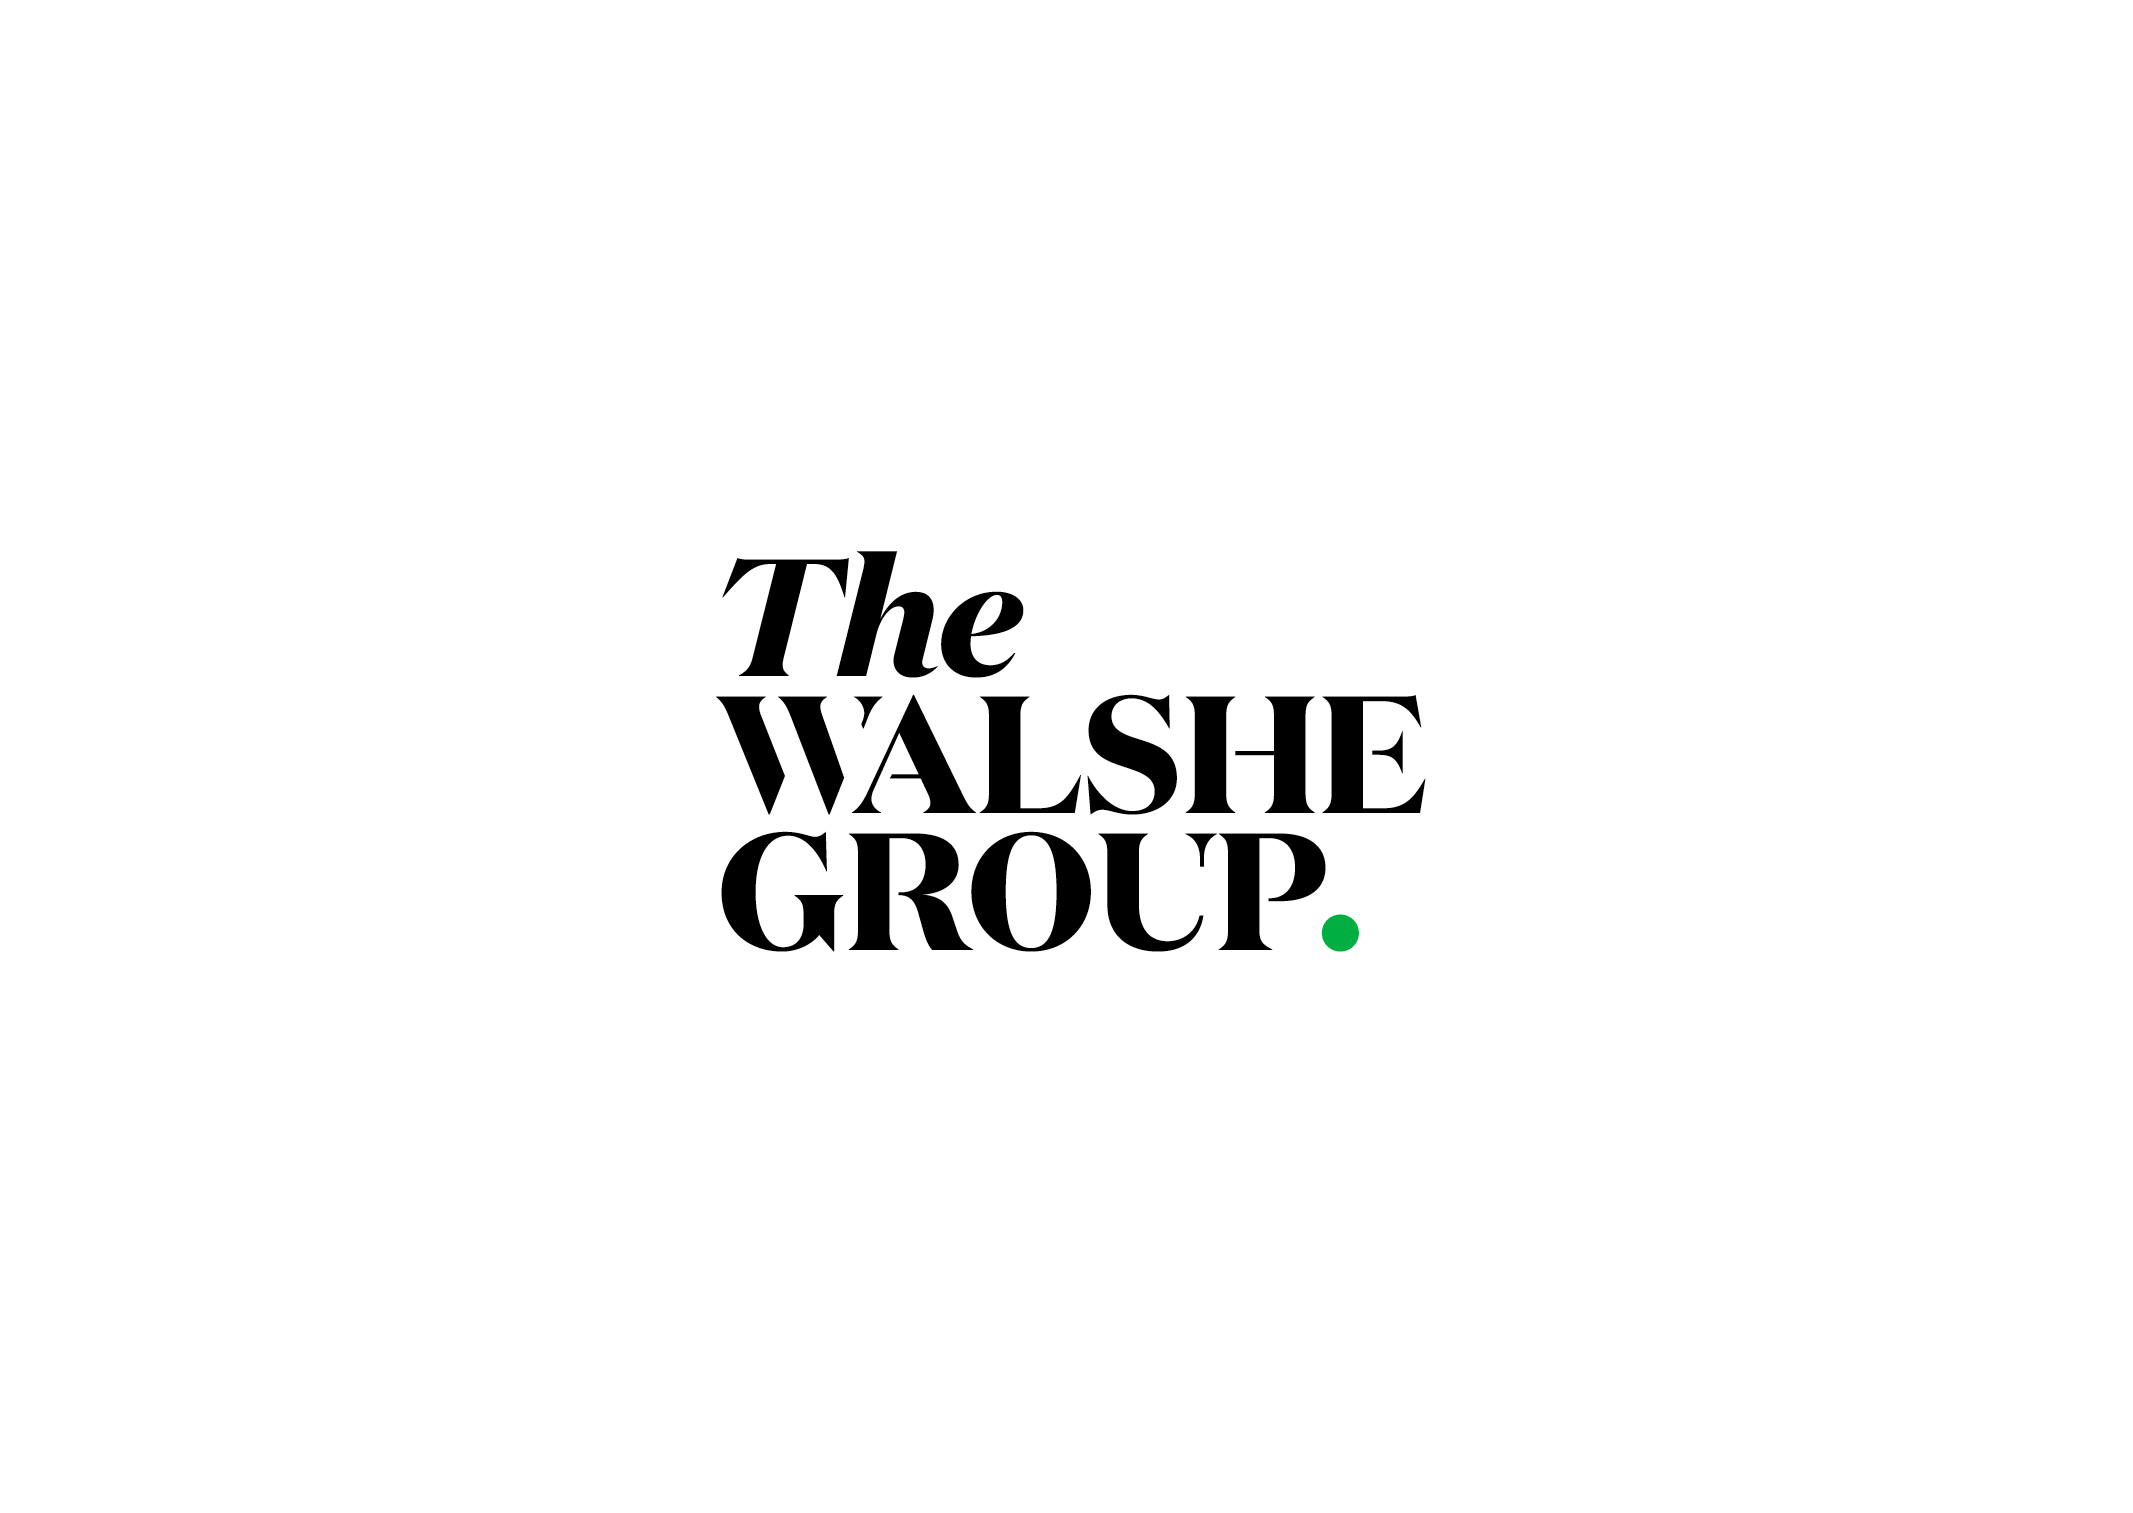 The Walshe Group Identity – Impactful serif typography with bright green full stop